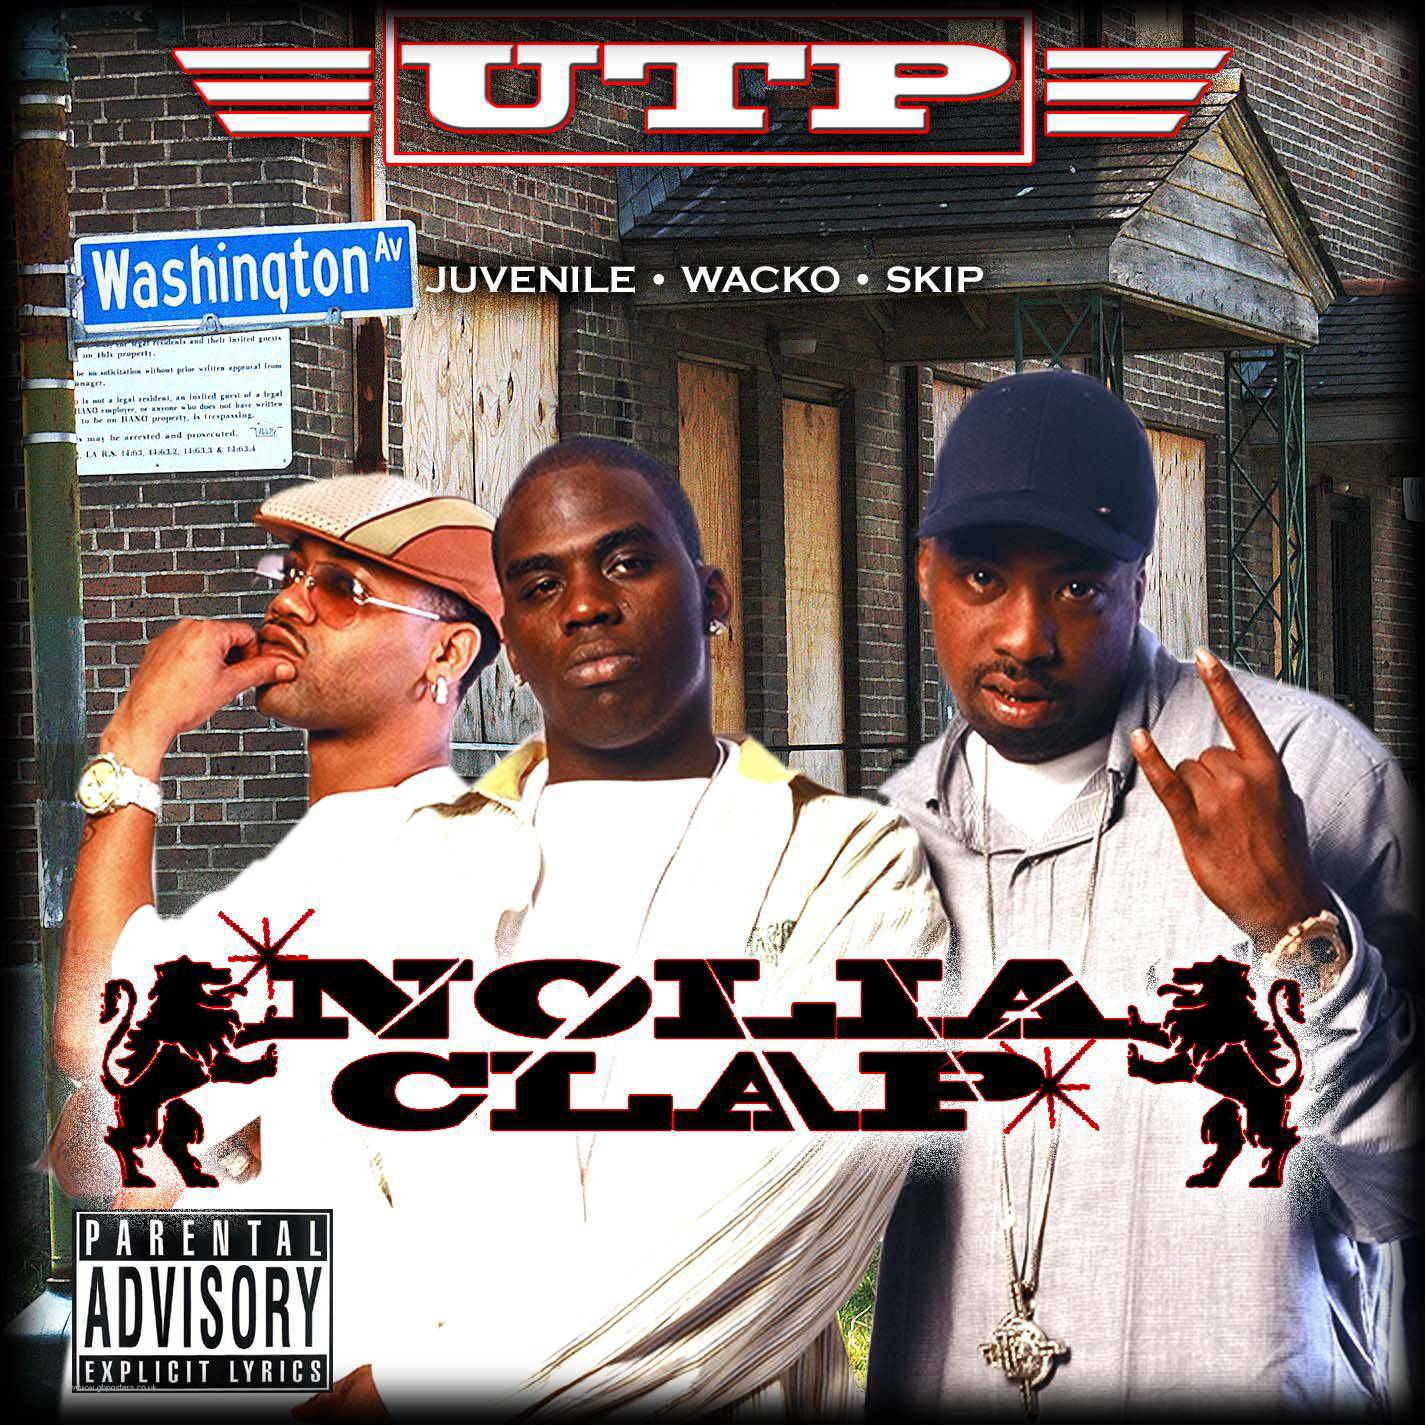 'Nolia Clap' by The UTP Playas and Juvenile - We're sorry, but even if you're not from N'awlins you can't help but feel this jam wholeheartedly.   (Photo: Ra-o-Lot)